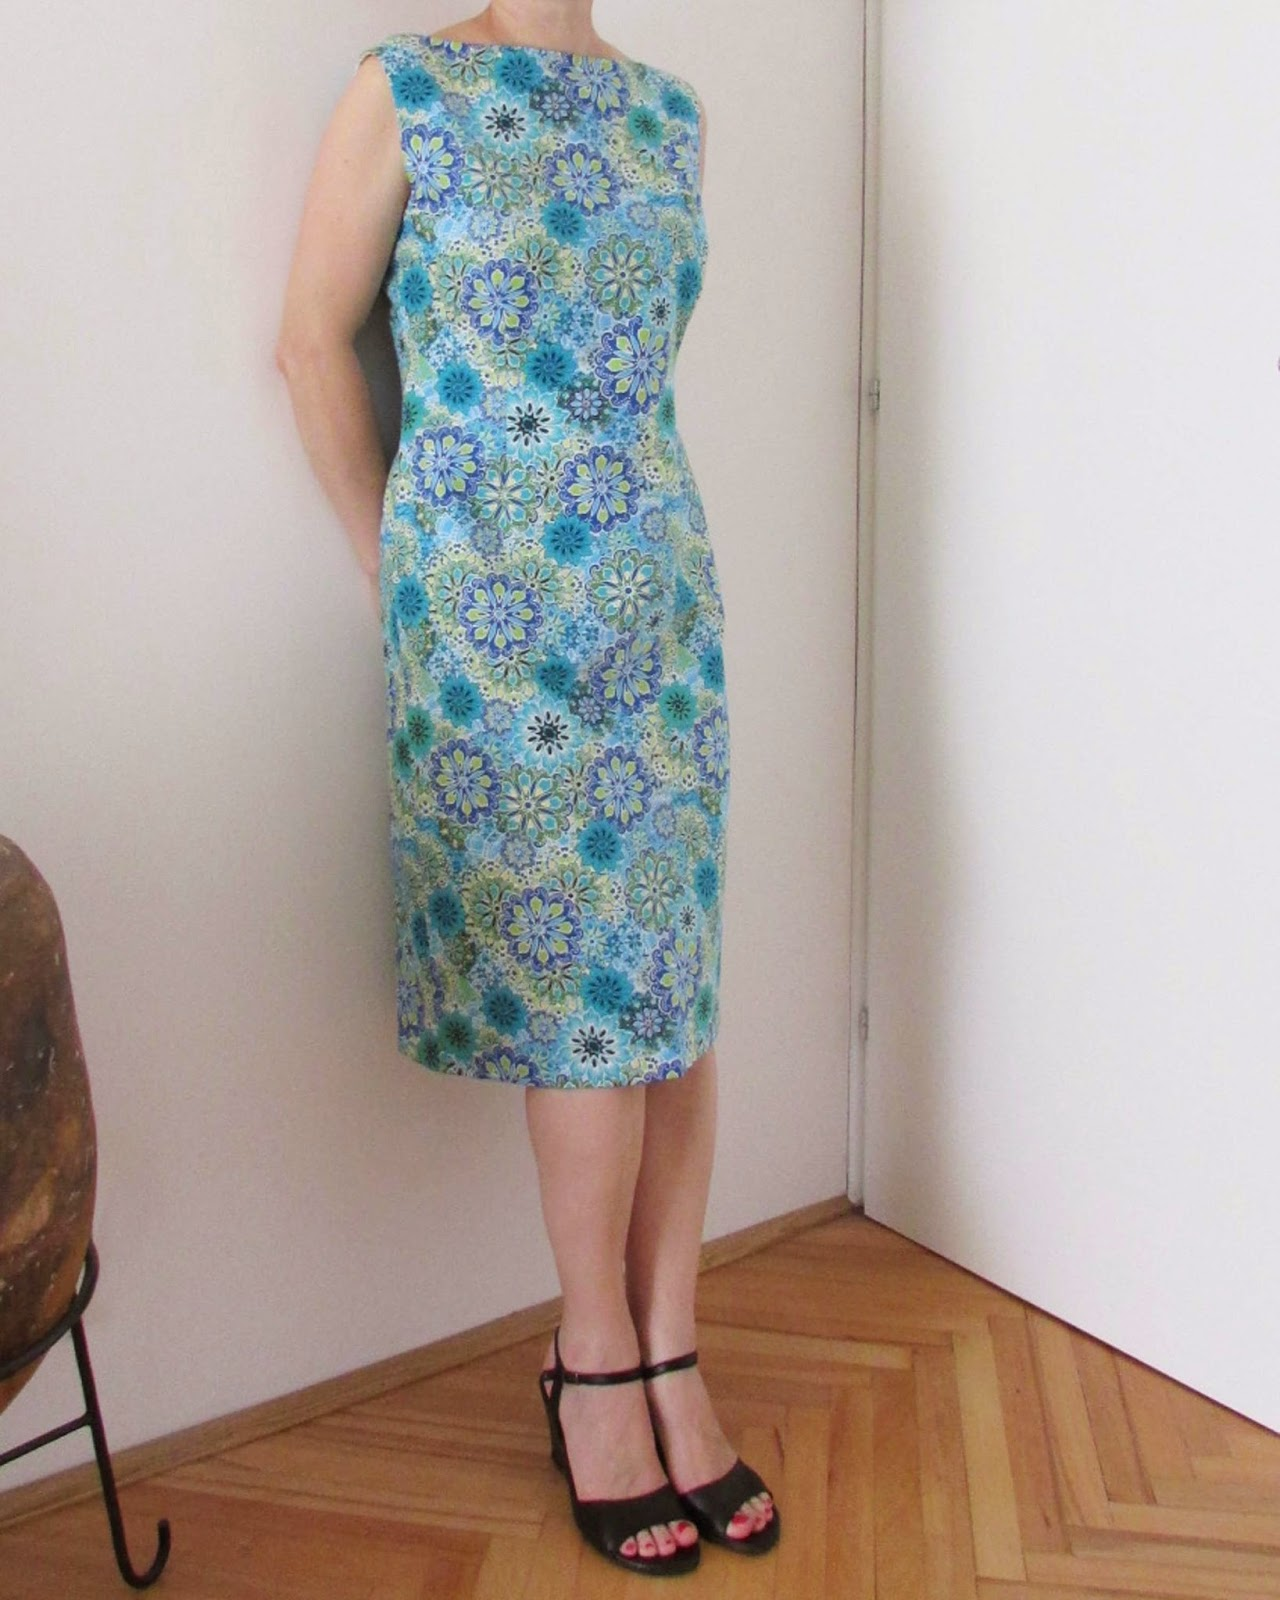 http://ladylinaland.blogspot.com/2014/08/calypso-dress.html